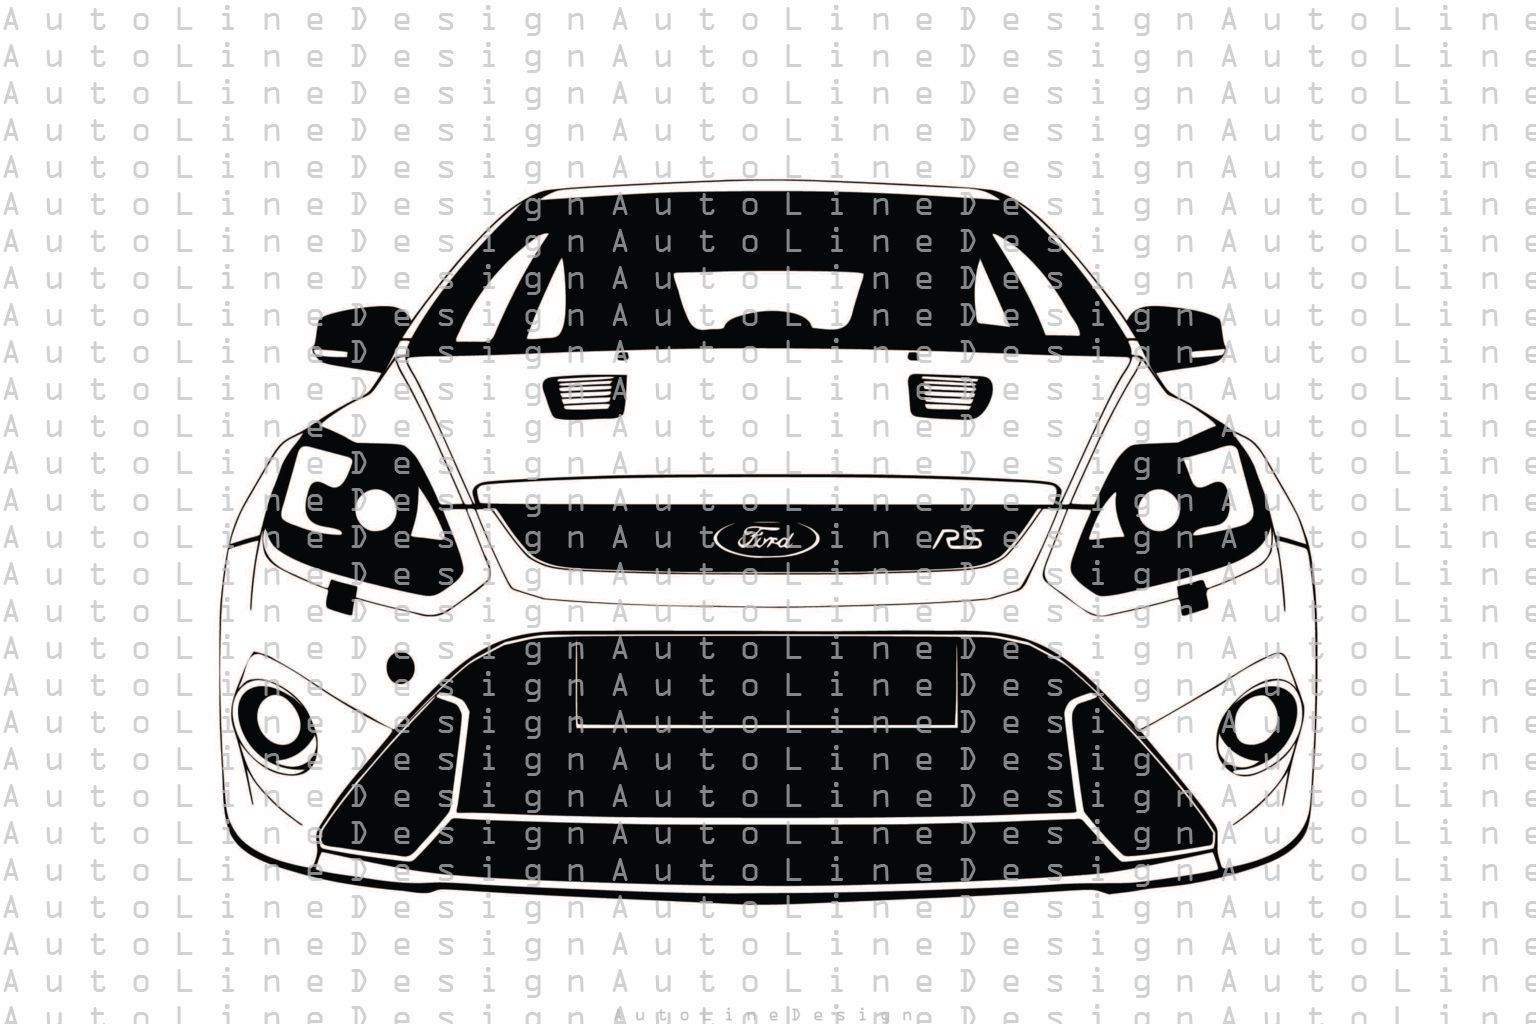 Ford Focus Rs Gen 2 Rally Racing Drift Drag Svg Pdf Dxf Eps Png Illustration Car Vector Automotive Stencil Graphic Art Instant Download In 2021 Ford Focus Ford Focus Rs Car Vector